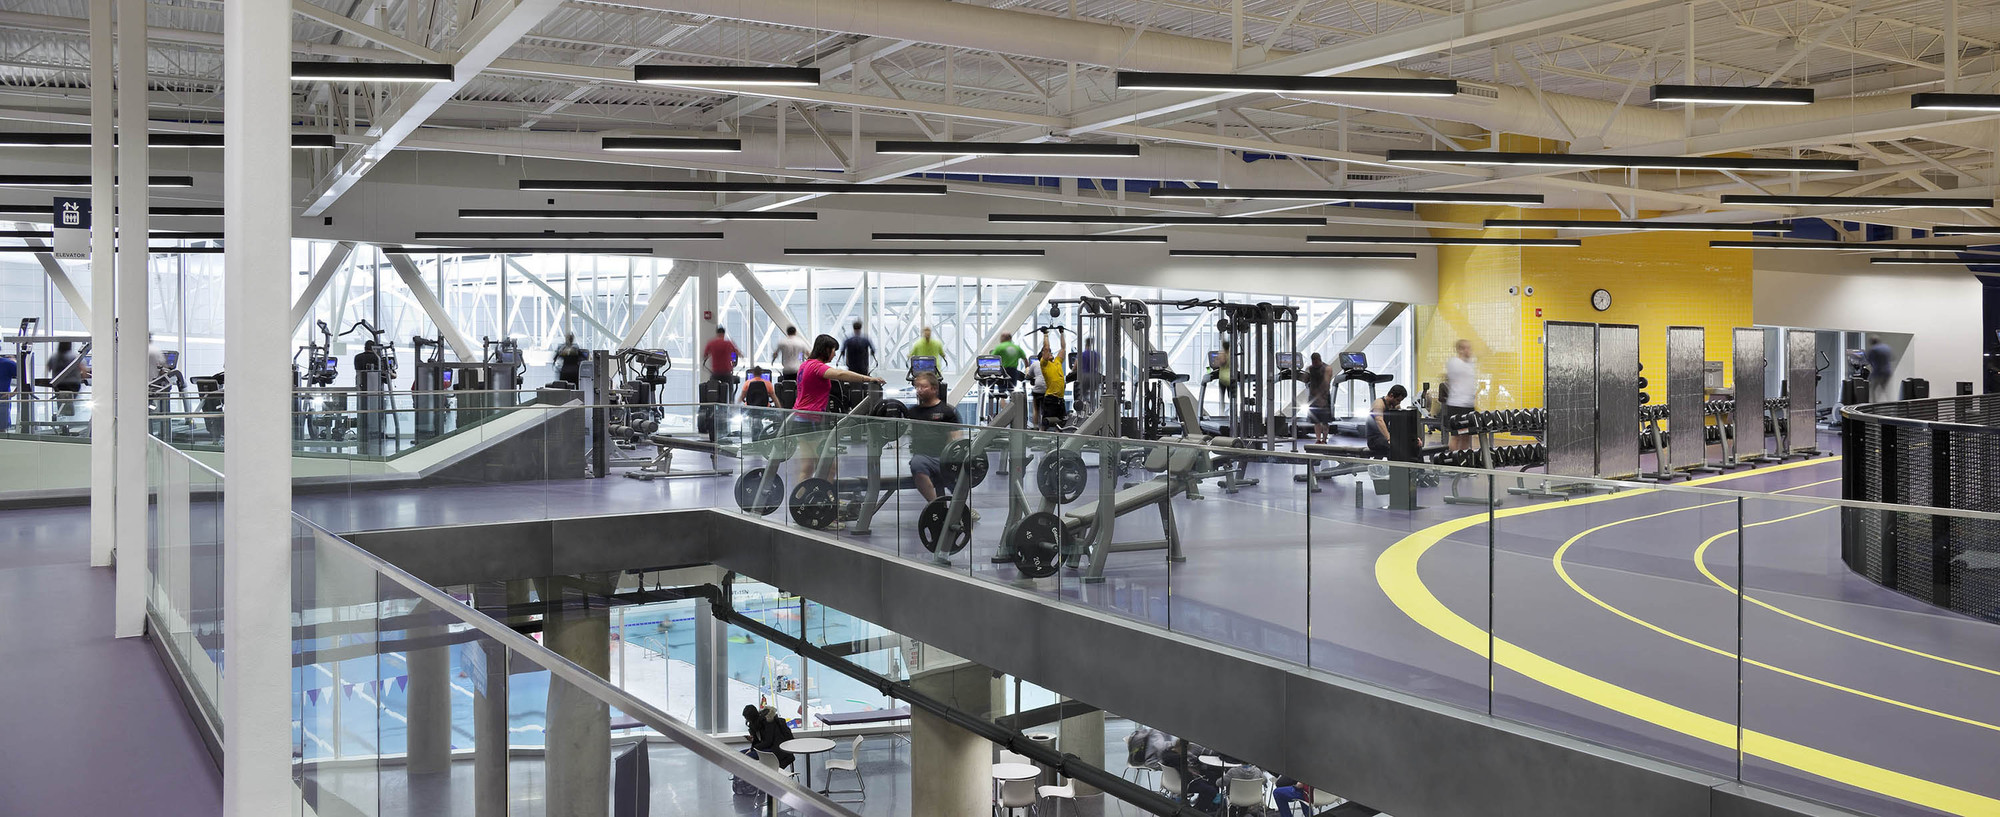 Gallery Of Clareview Community Recreation Centre Teeple